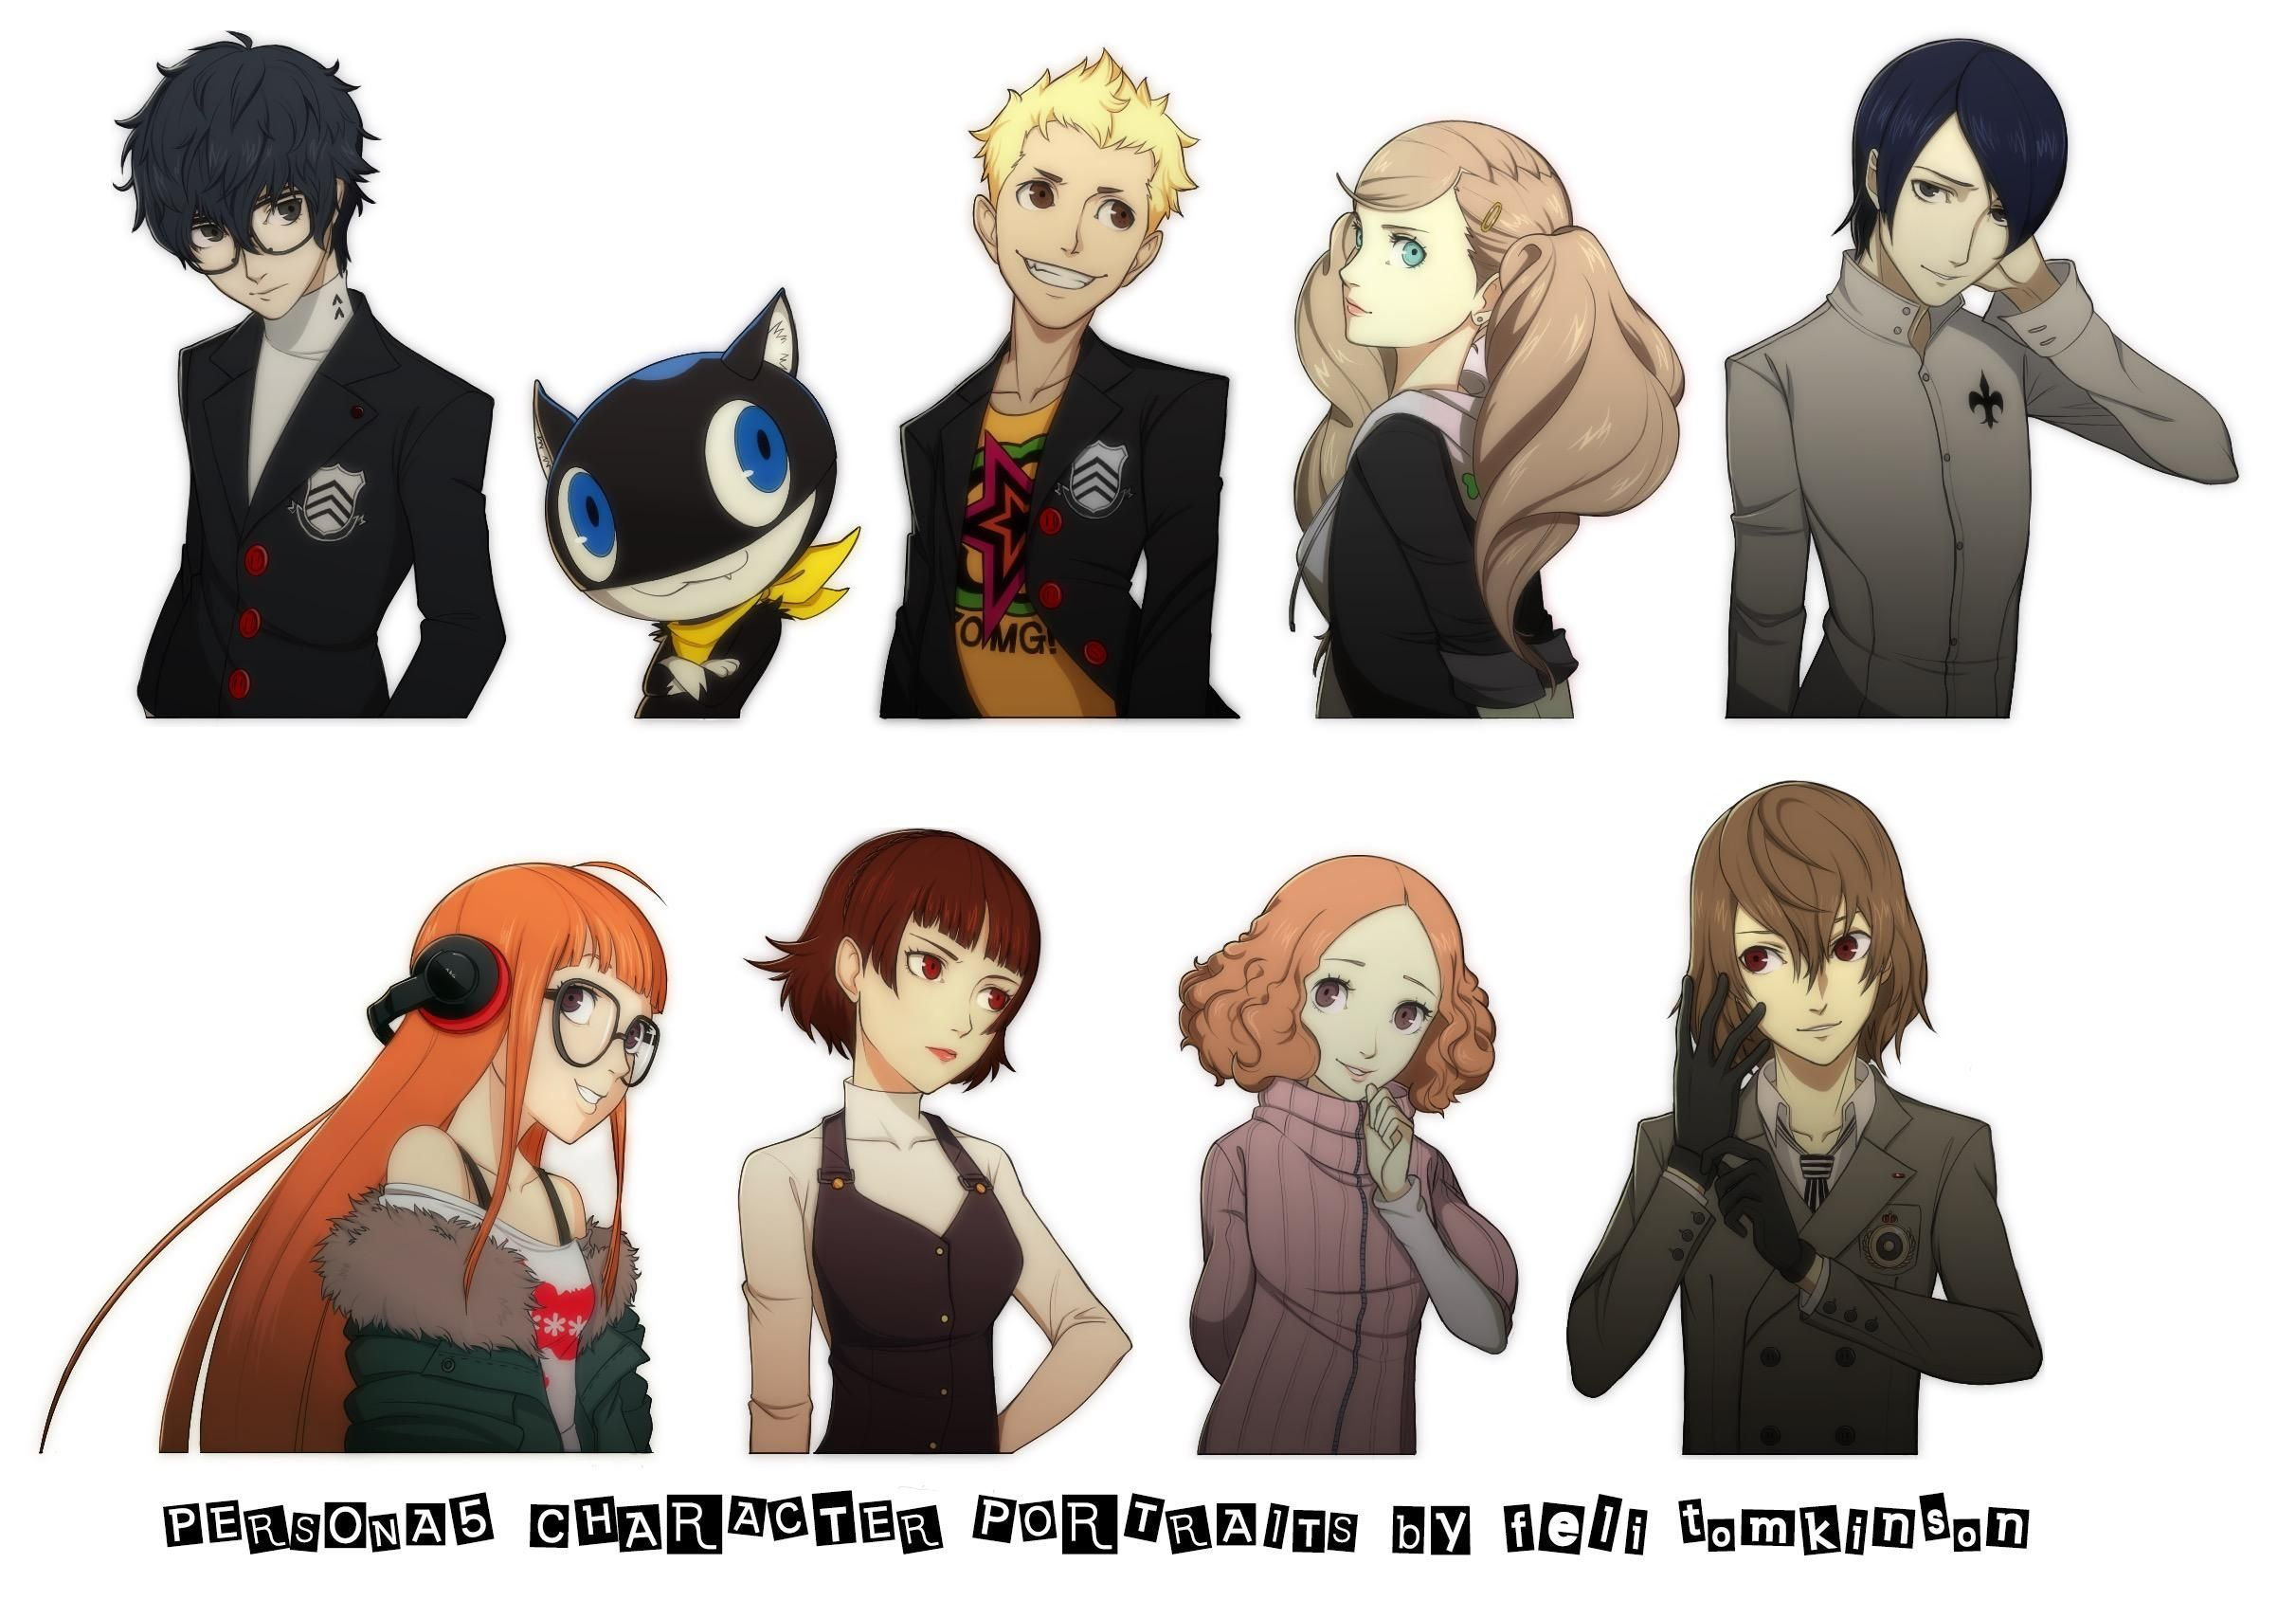 Pin by Ariisu on Persona 3 Persona 3 portable, Persona